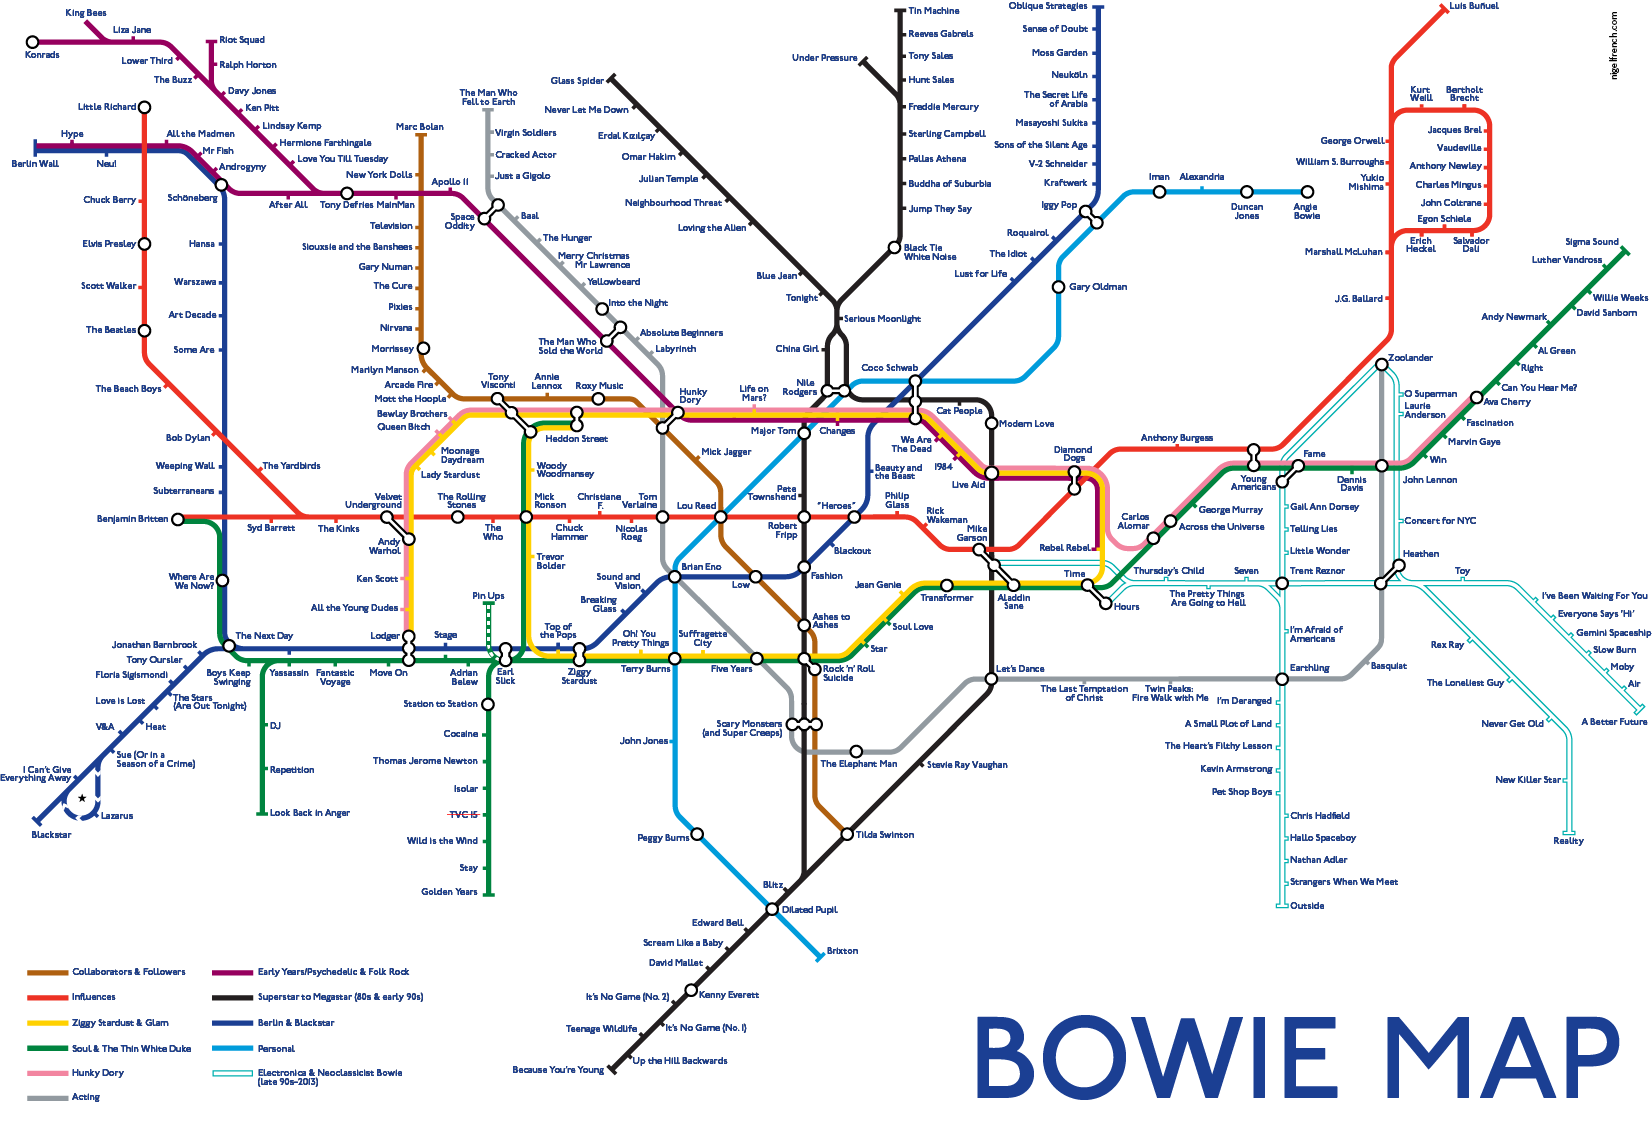 Bowie Map Nigel French Bowie Pinterest Bowie and Periodic table